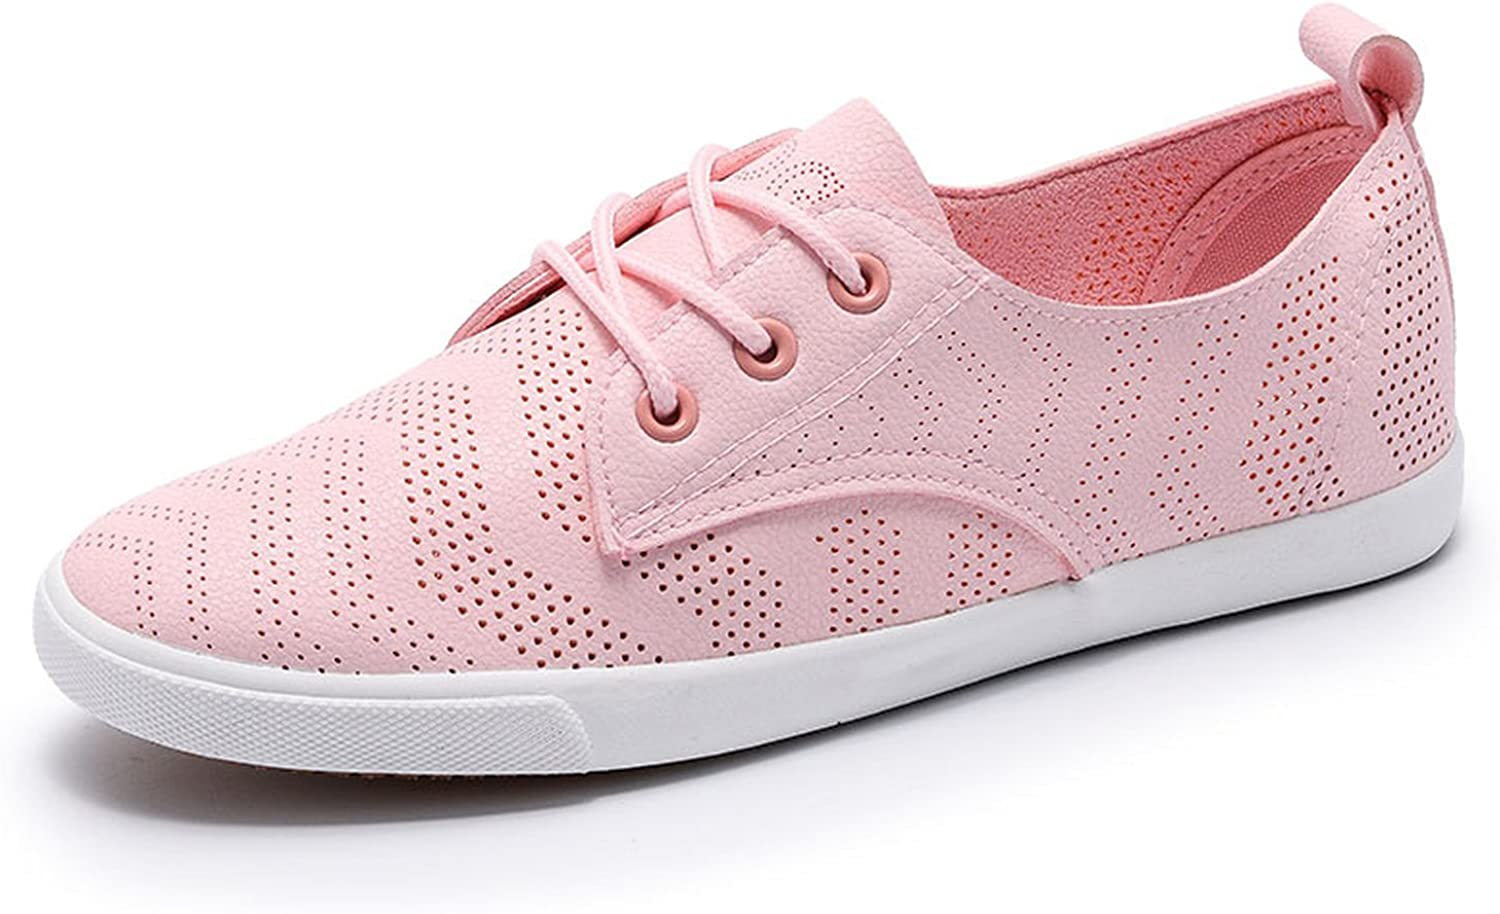 Zcaosma Women shoes with Hole Breathable Women Flat shoes Women Sneakers Casual shoes Lace-up Footwear